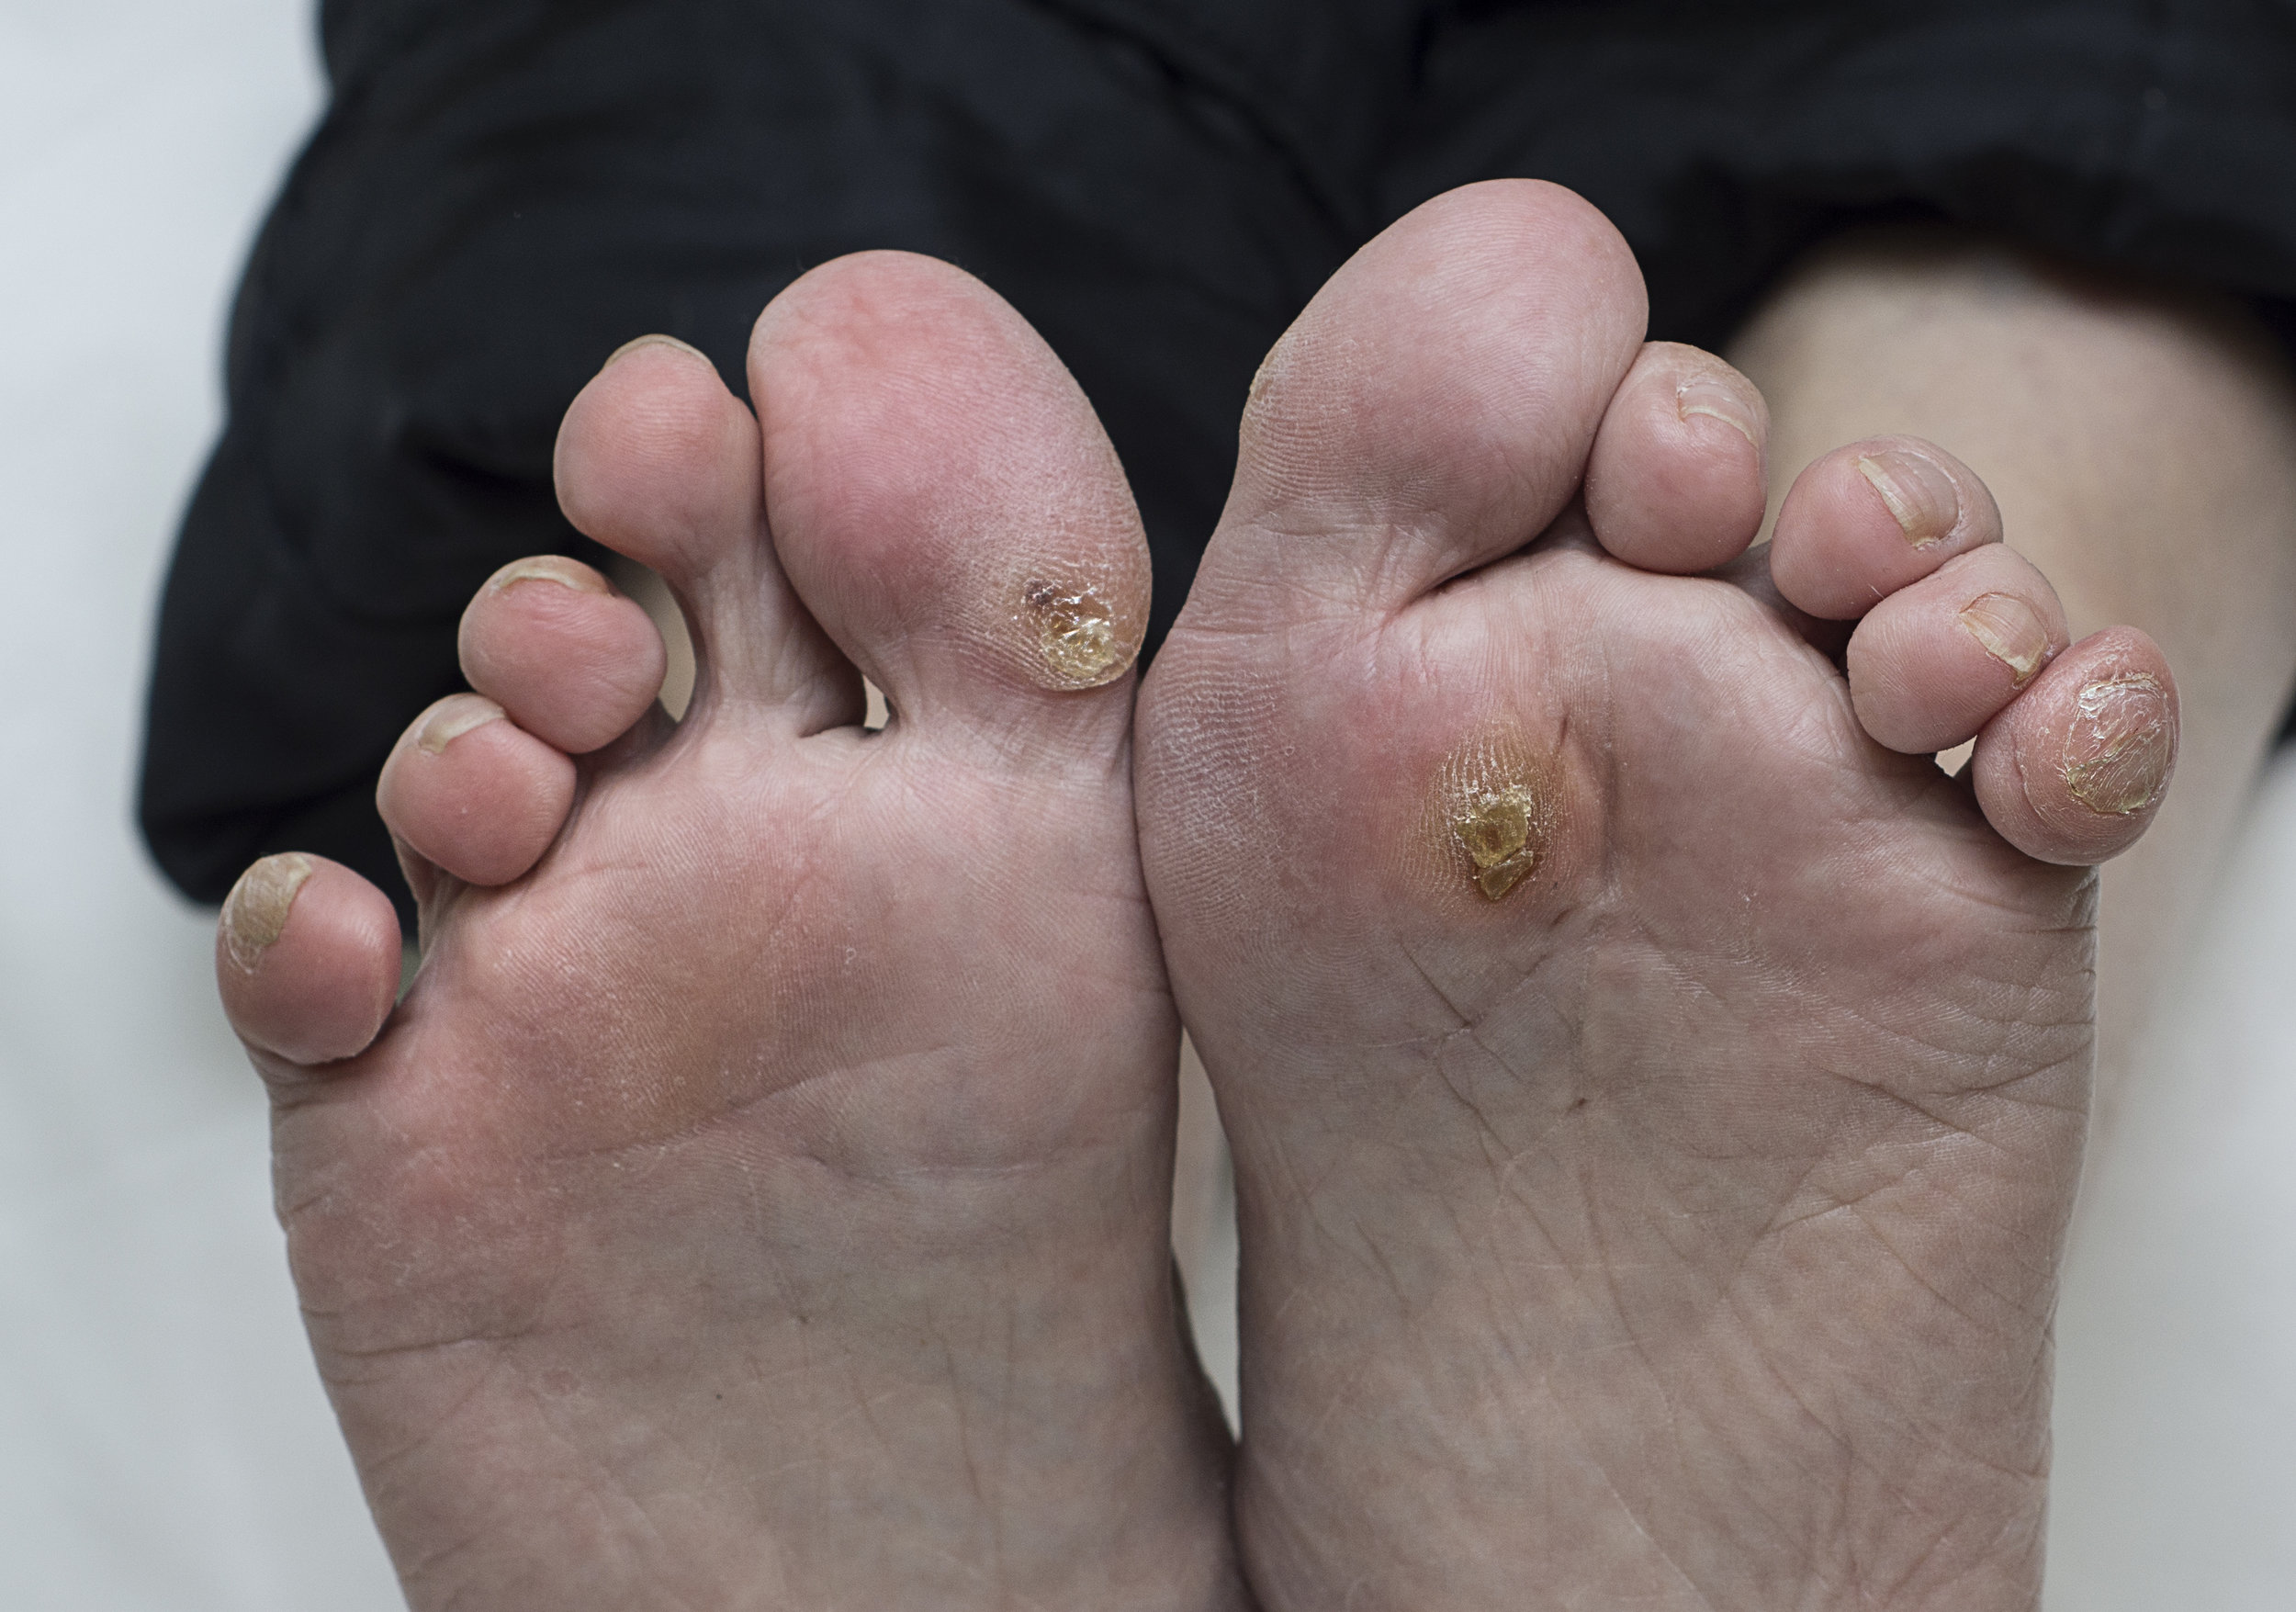 We can help your feet! - you may think your feet are bad, but we do see feet a lot worse than yours. Don't let embarrassment stop you from getting treatment